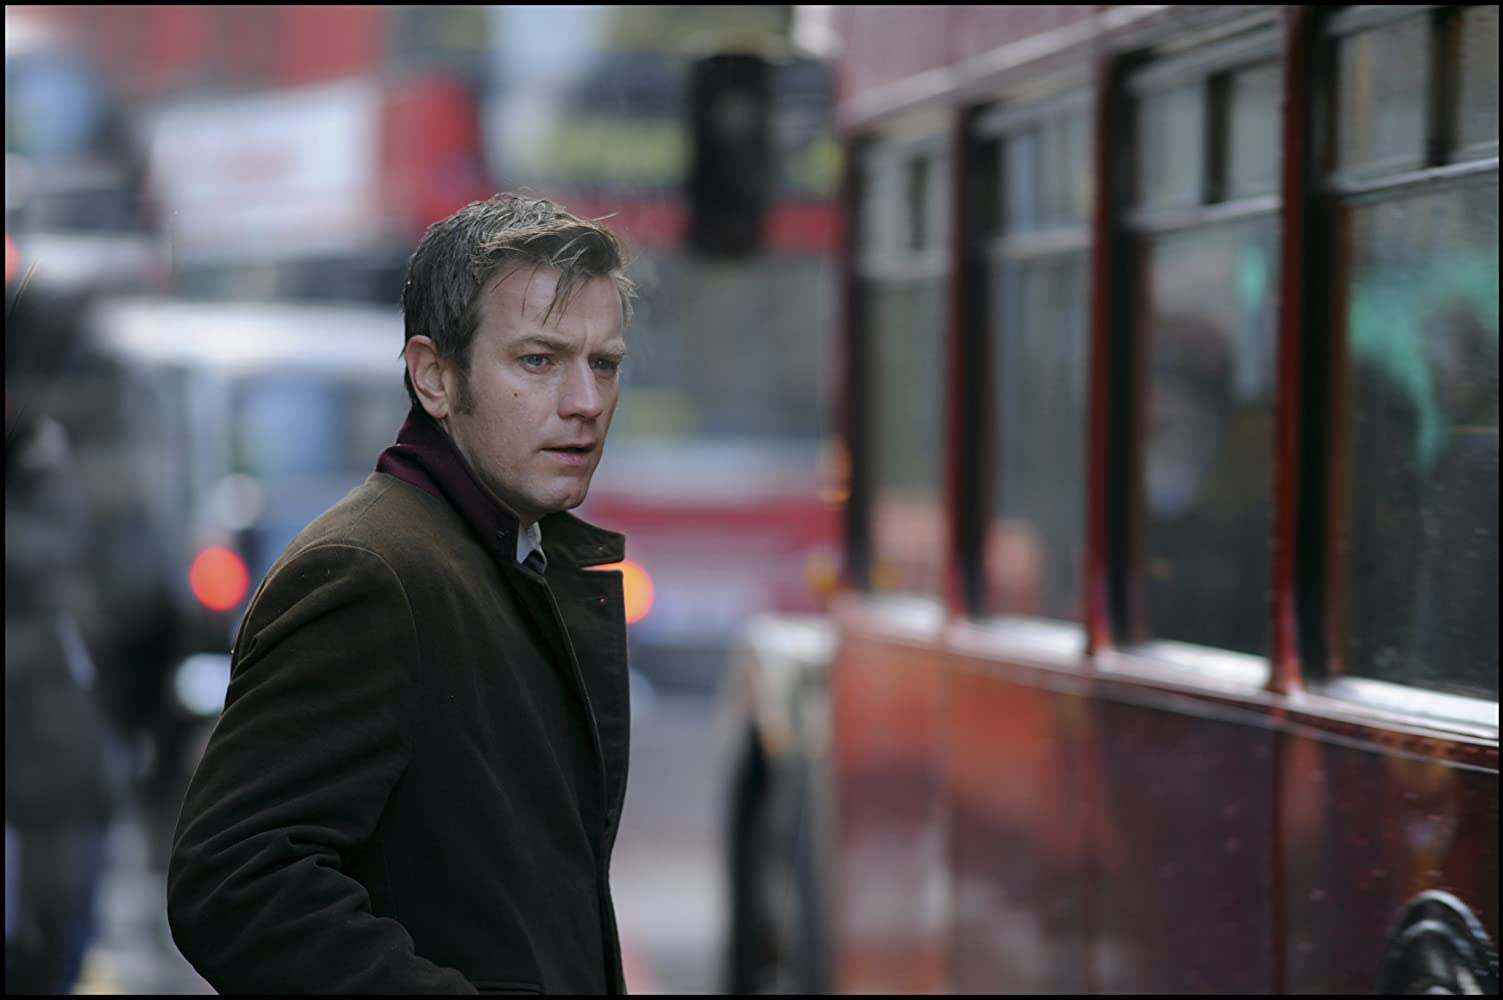 Ewan McGregor in The Ghost Writer (2010)